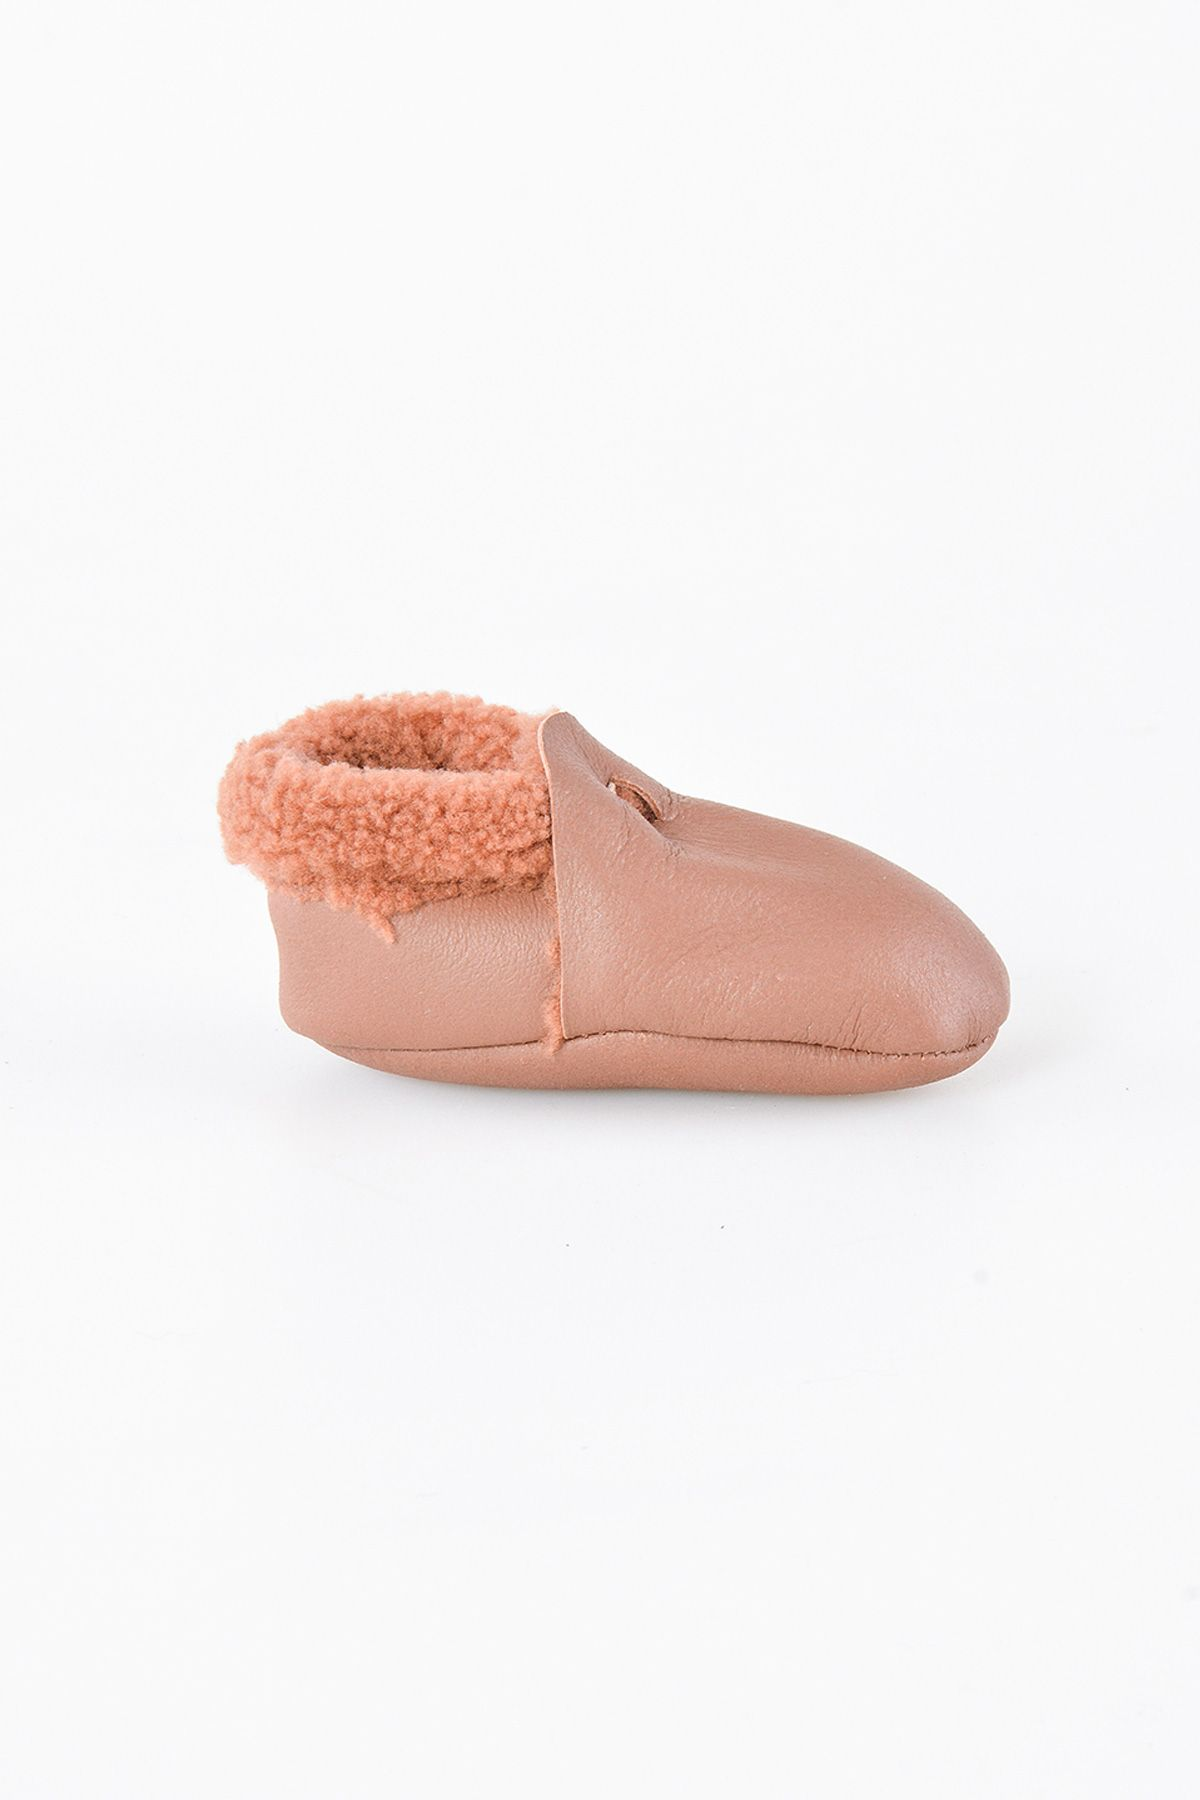 Pegia Shearling Baby's Bootie 143004 Ginger